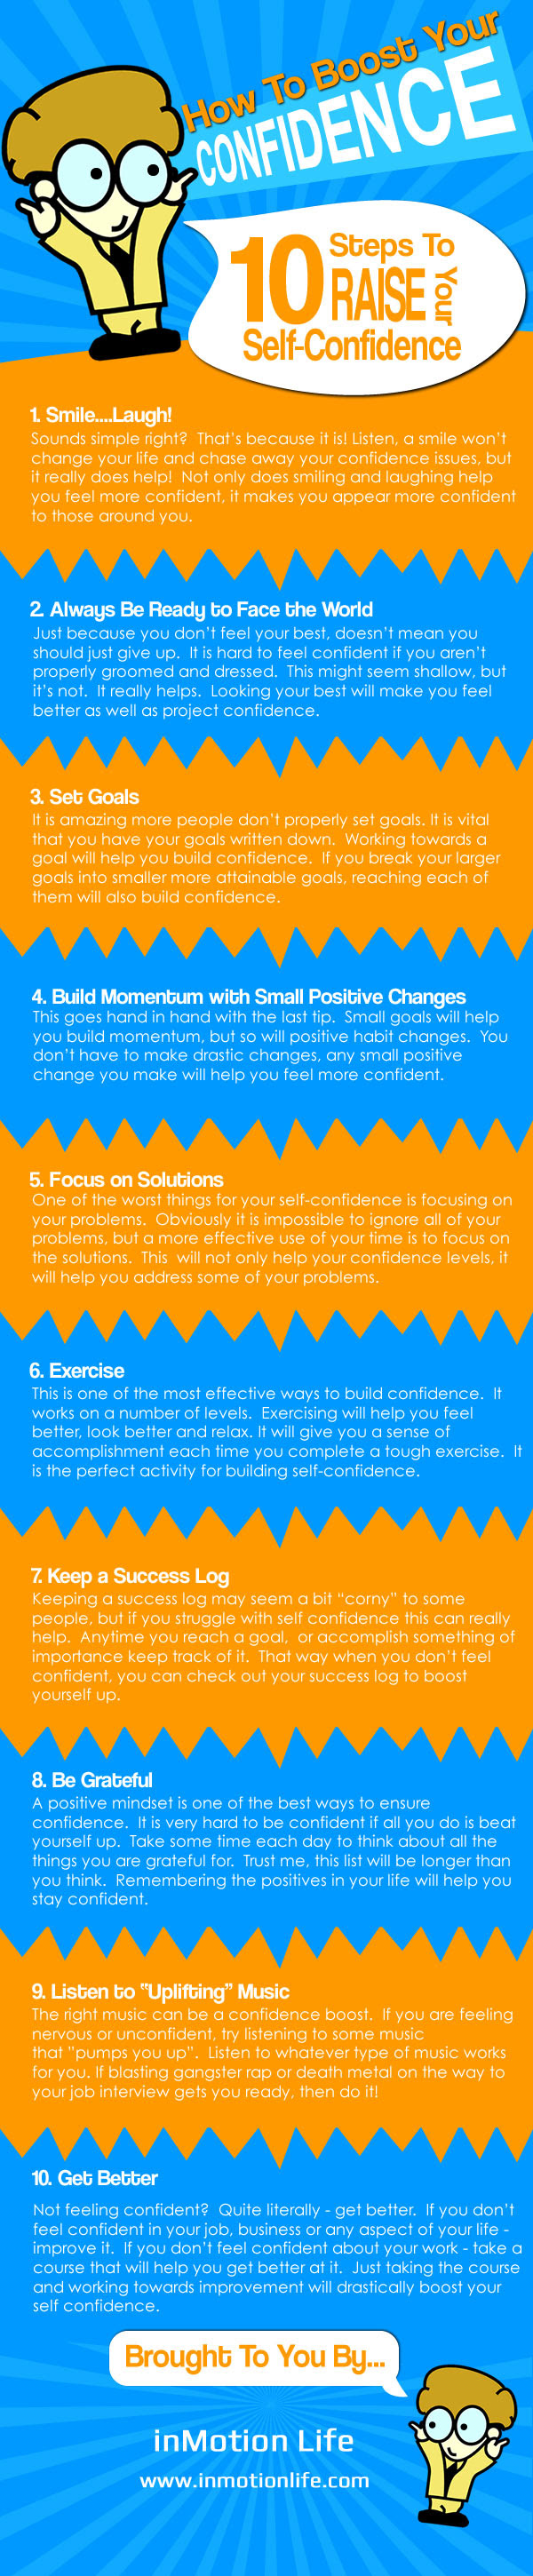 Infographic : How to Boost Your Confidence instantly : 10 steps to raise your self-confidence and self-esteem